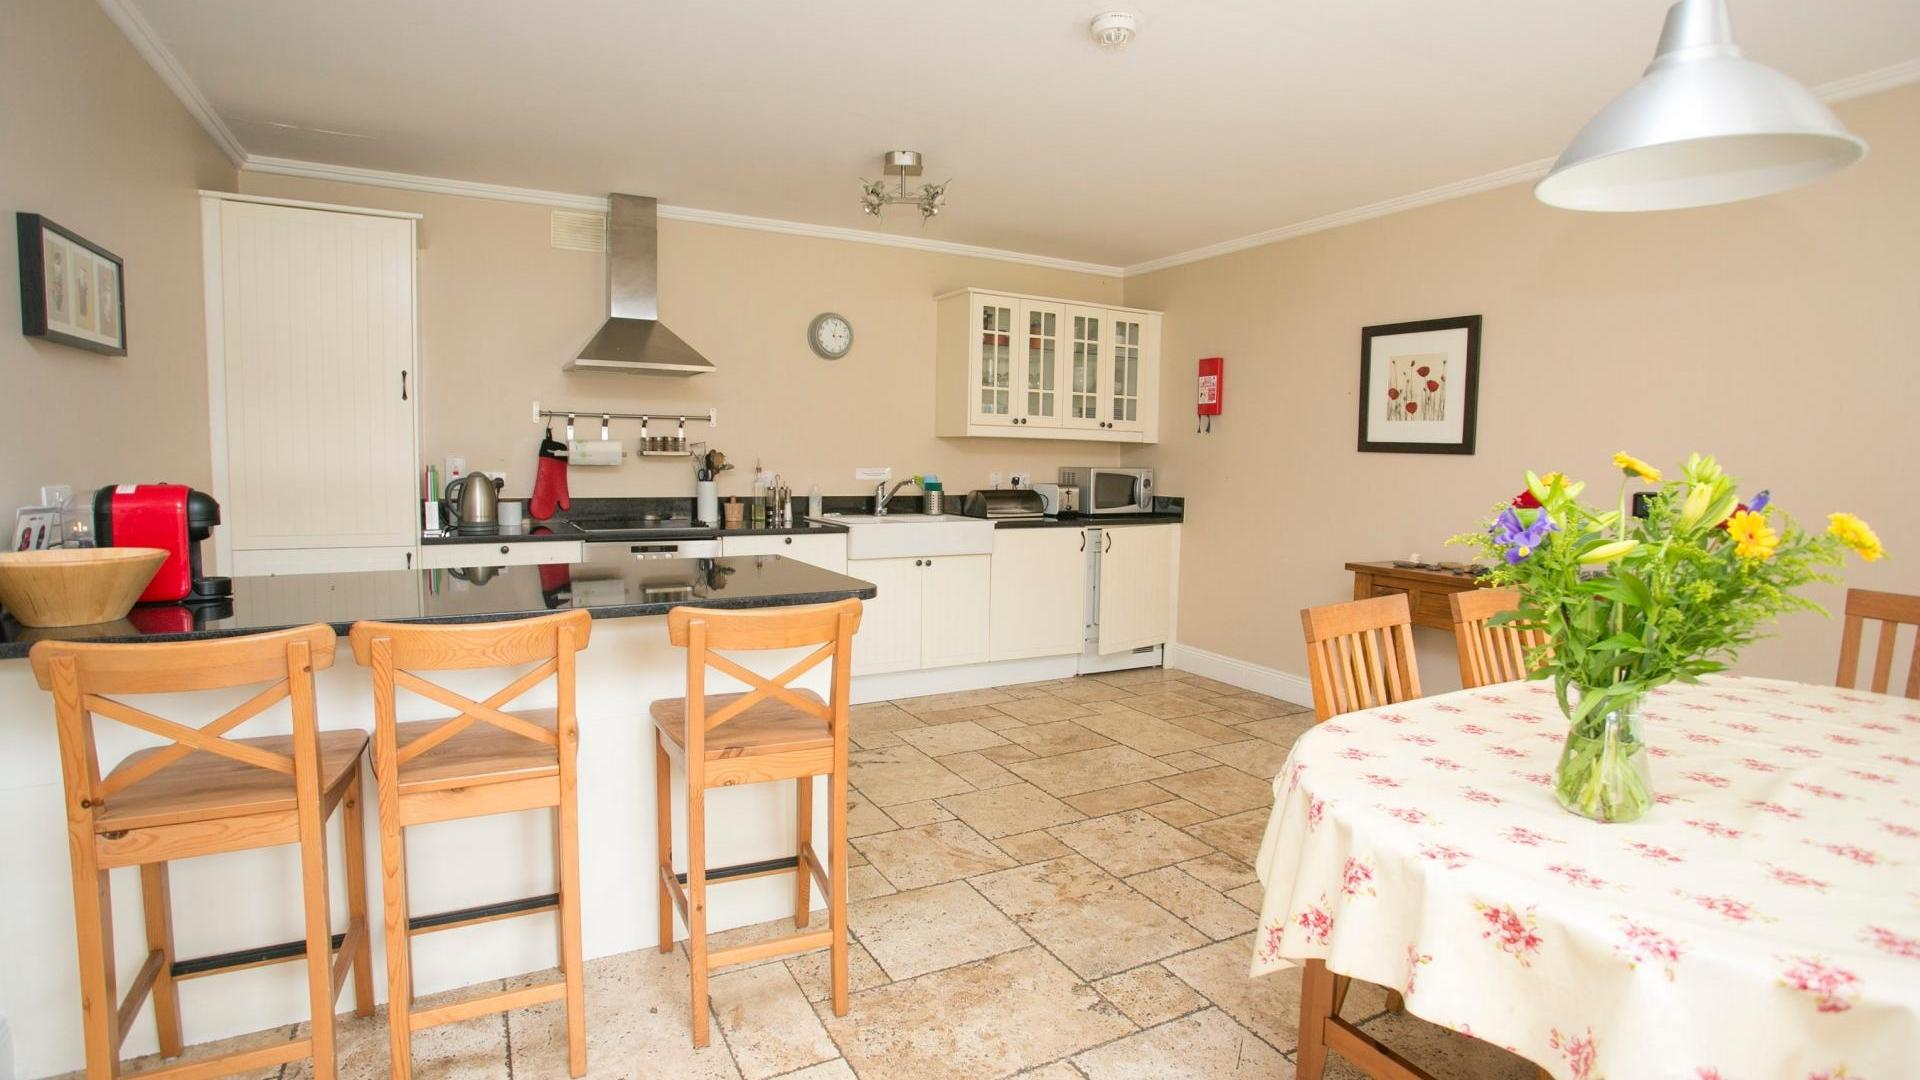 2 Bedroom Cottage/shared facilities in  Ireland